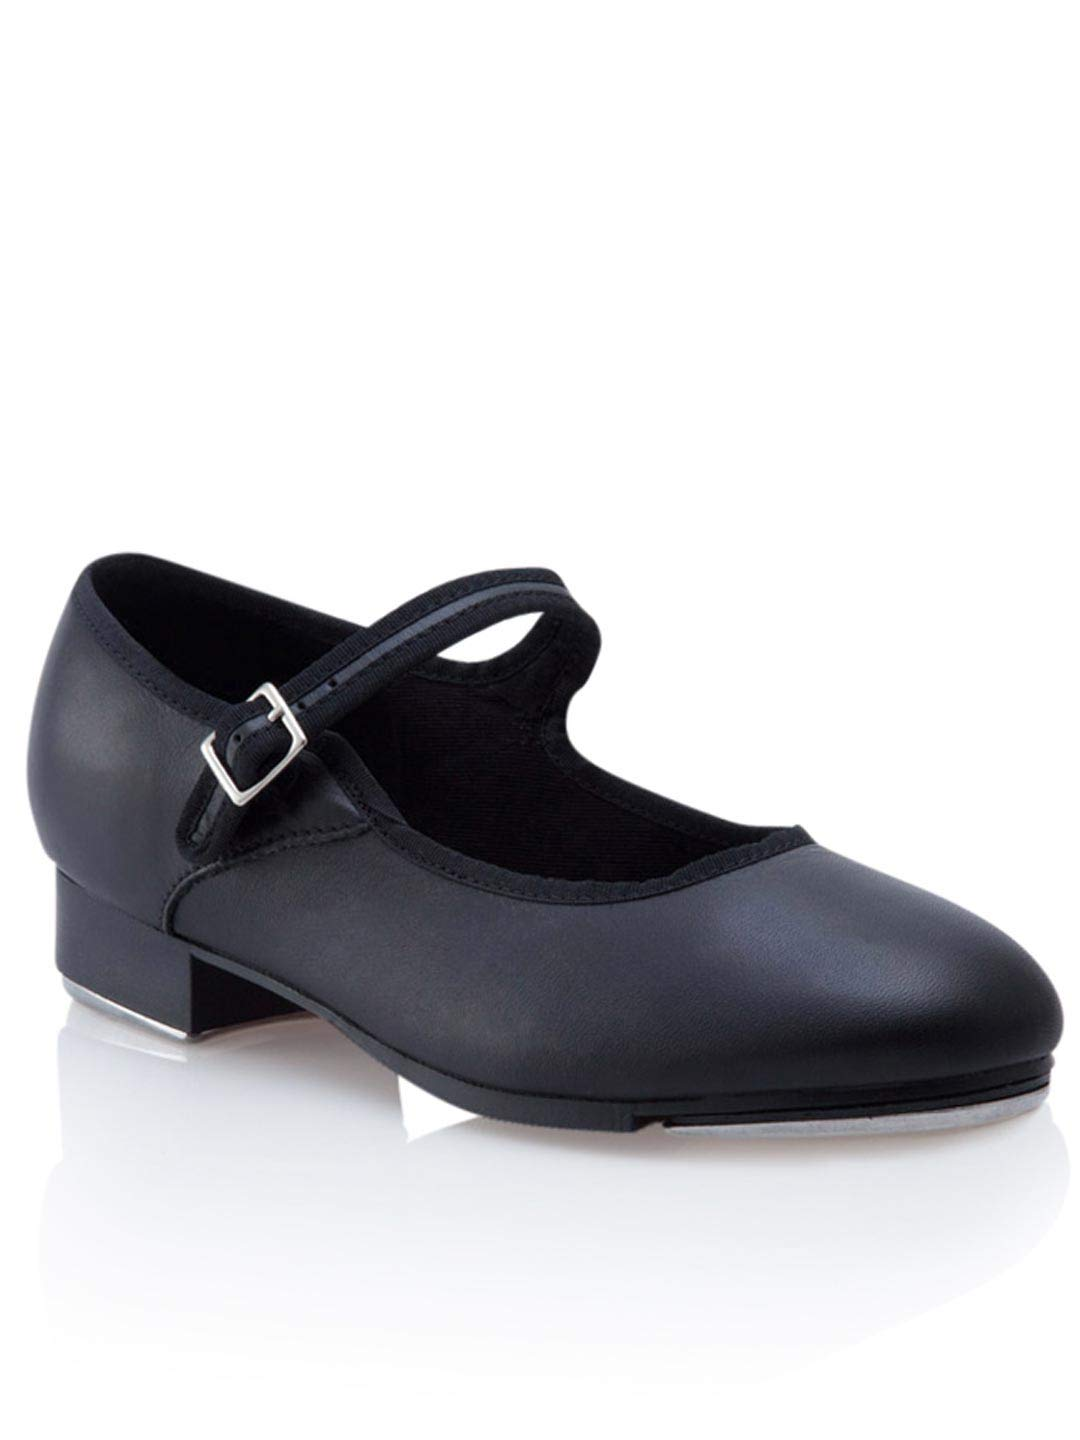 Capezio Women's Mary Jane Tap Shoe - Black, 9 M US